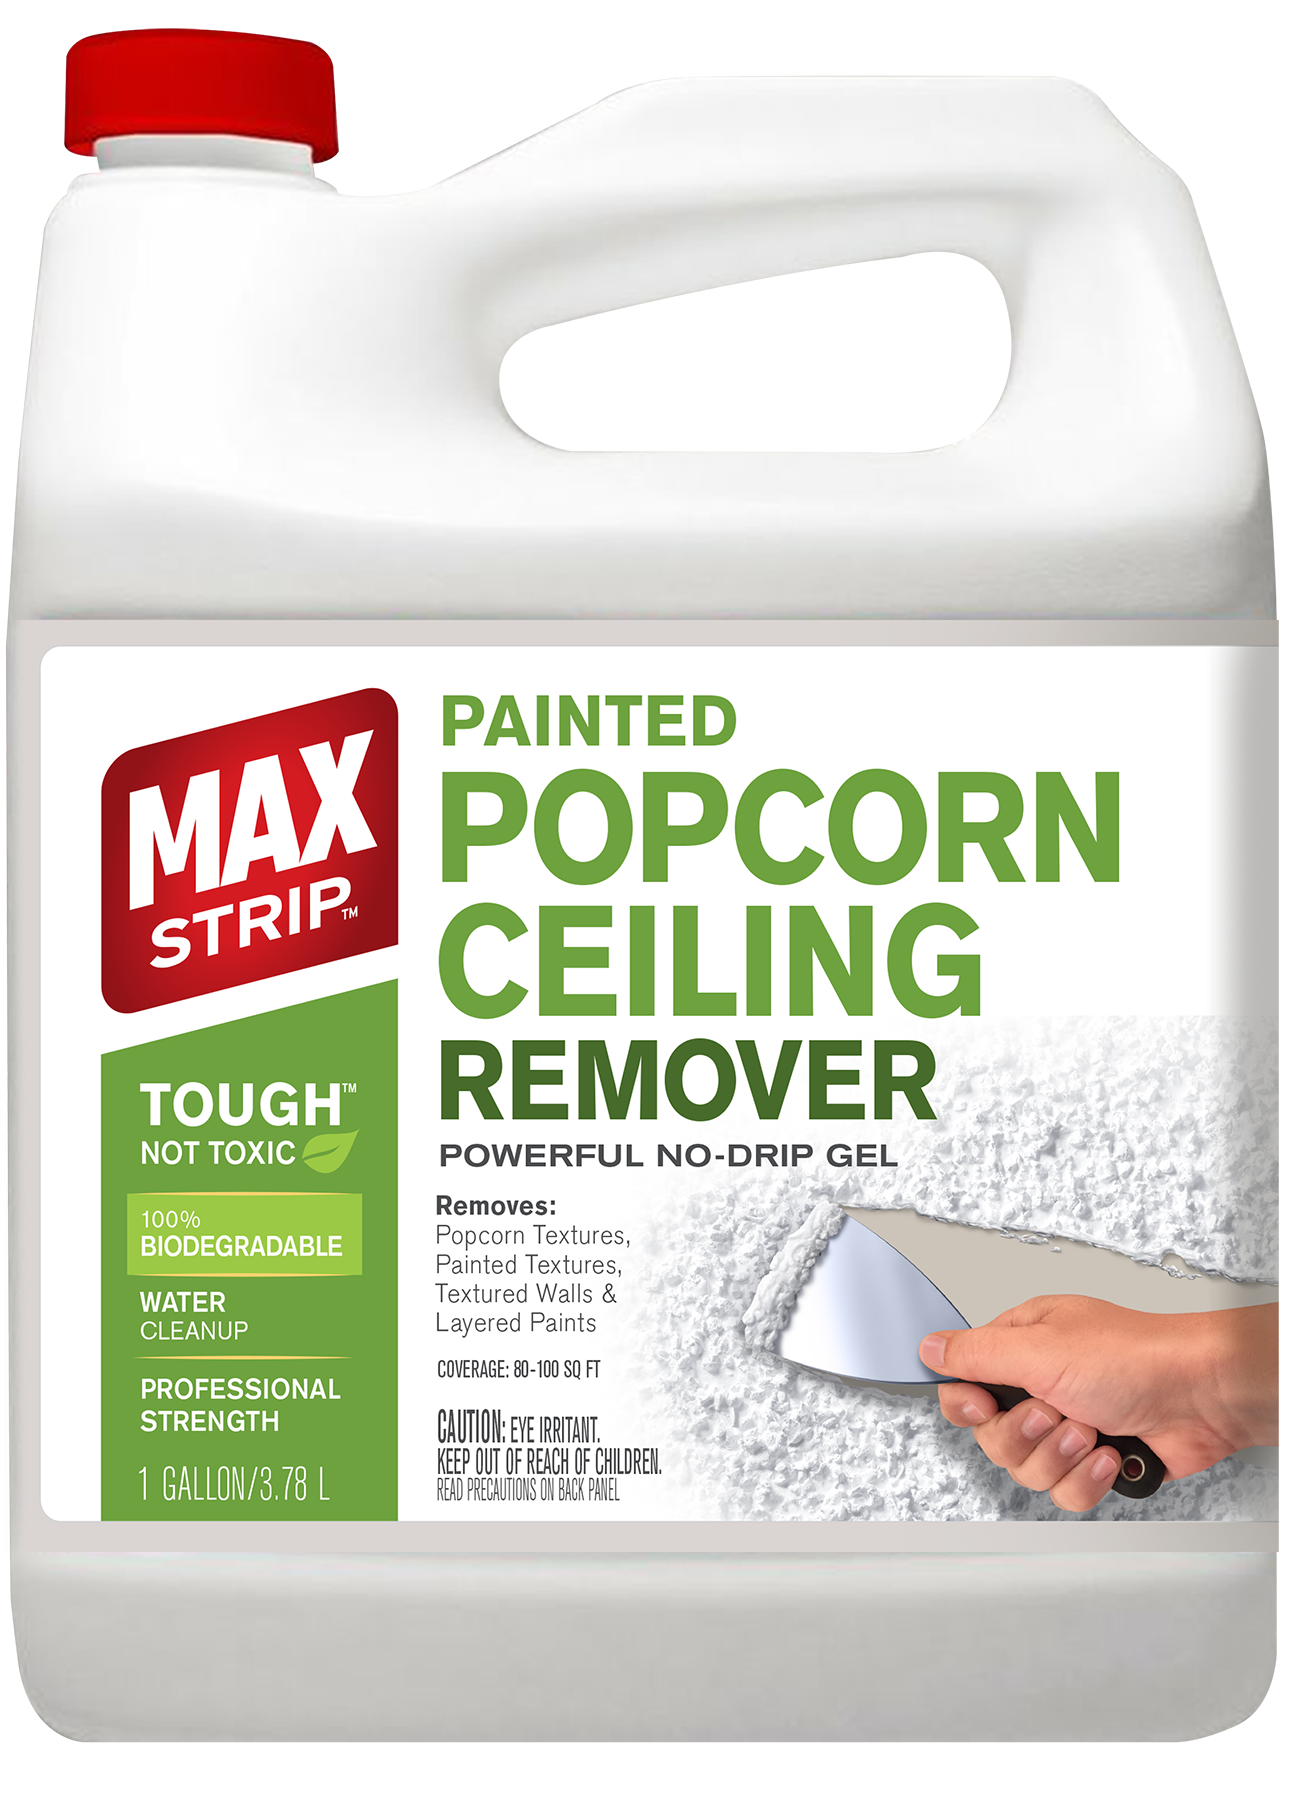 Klean strip paint remover, squirting cocks